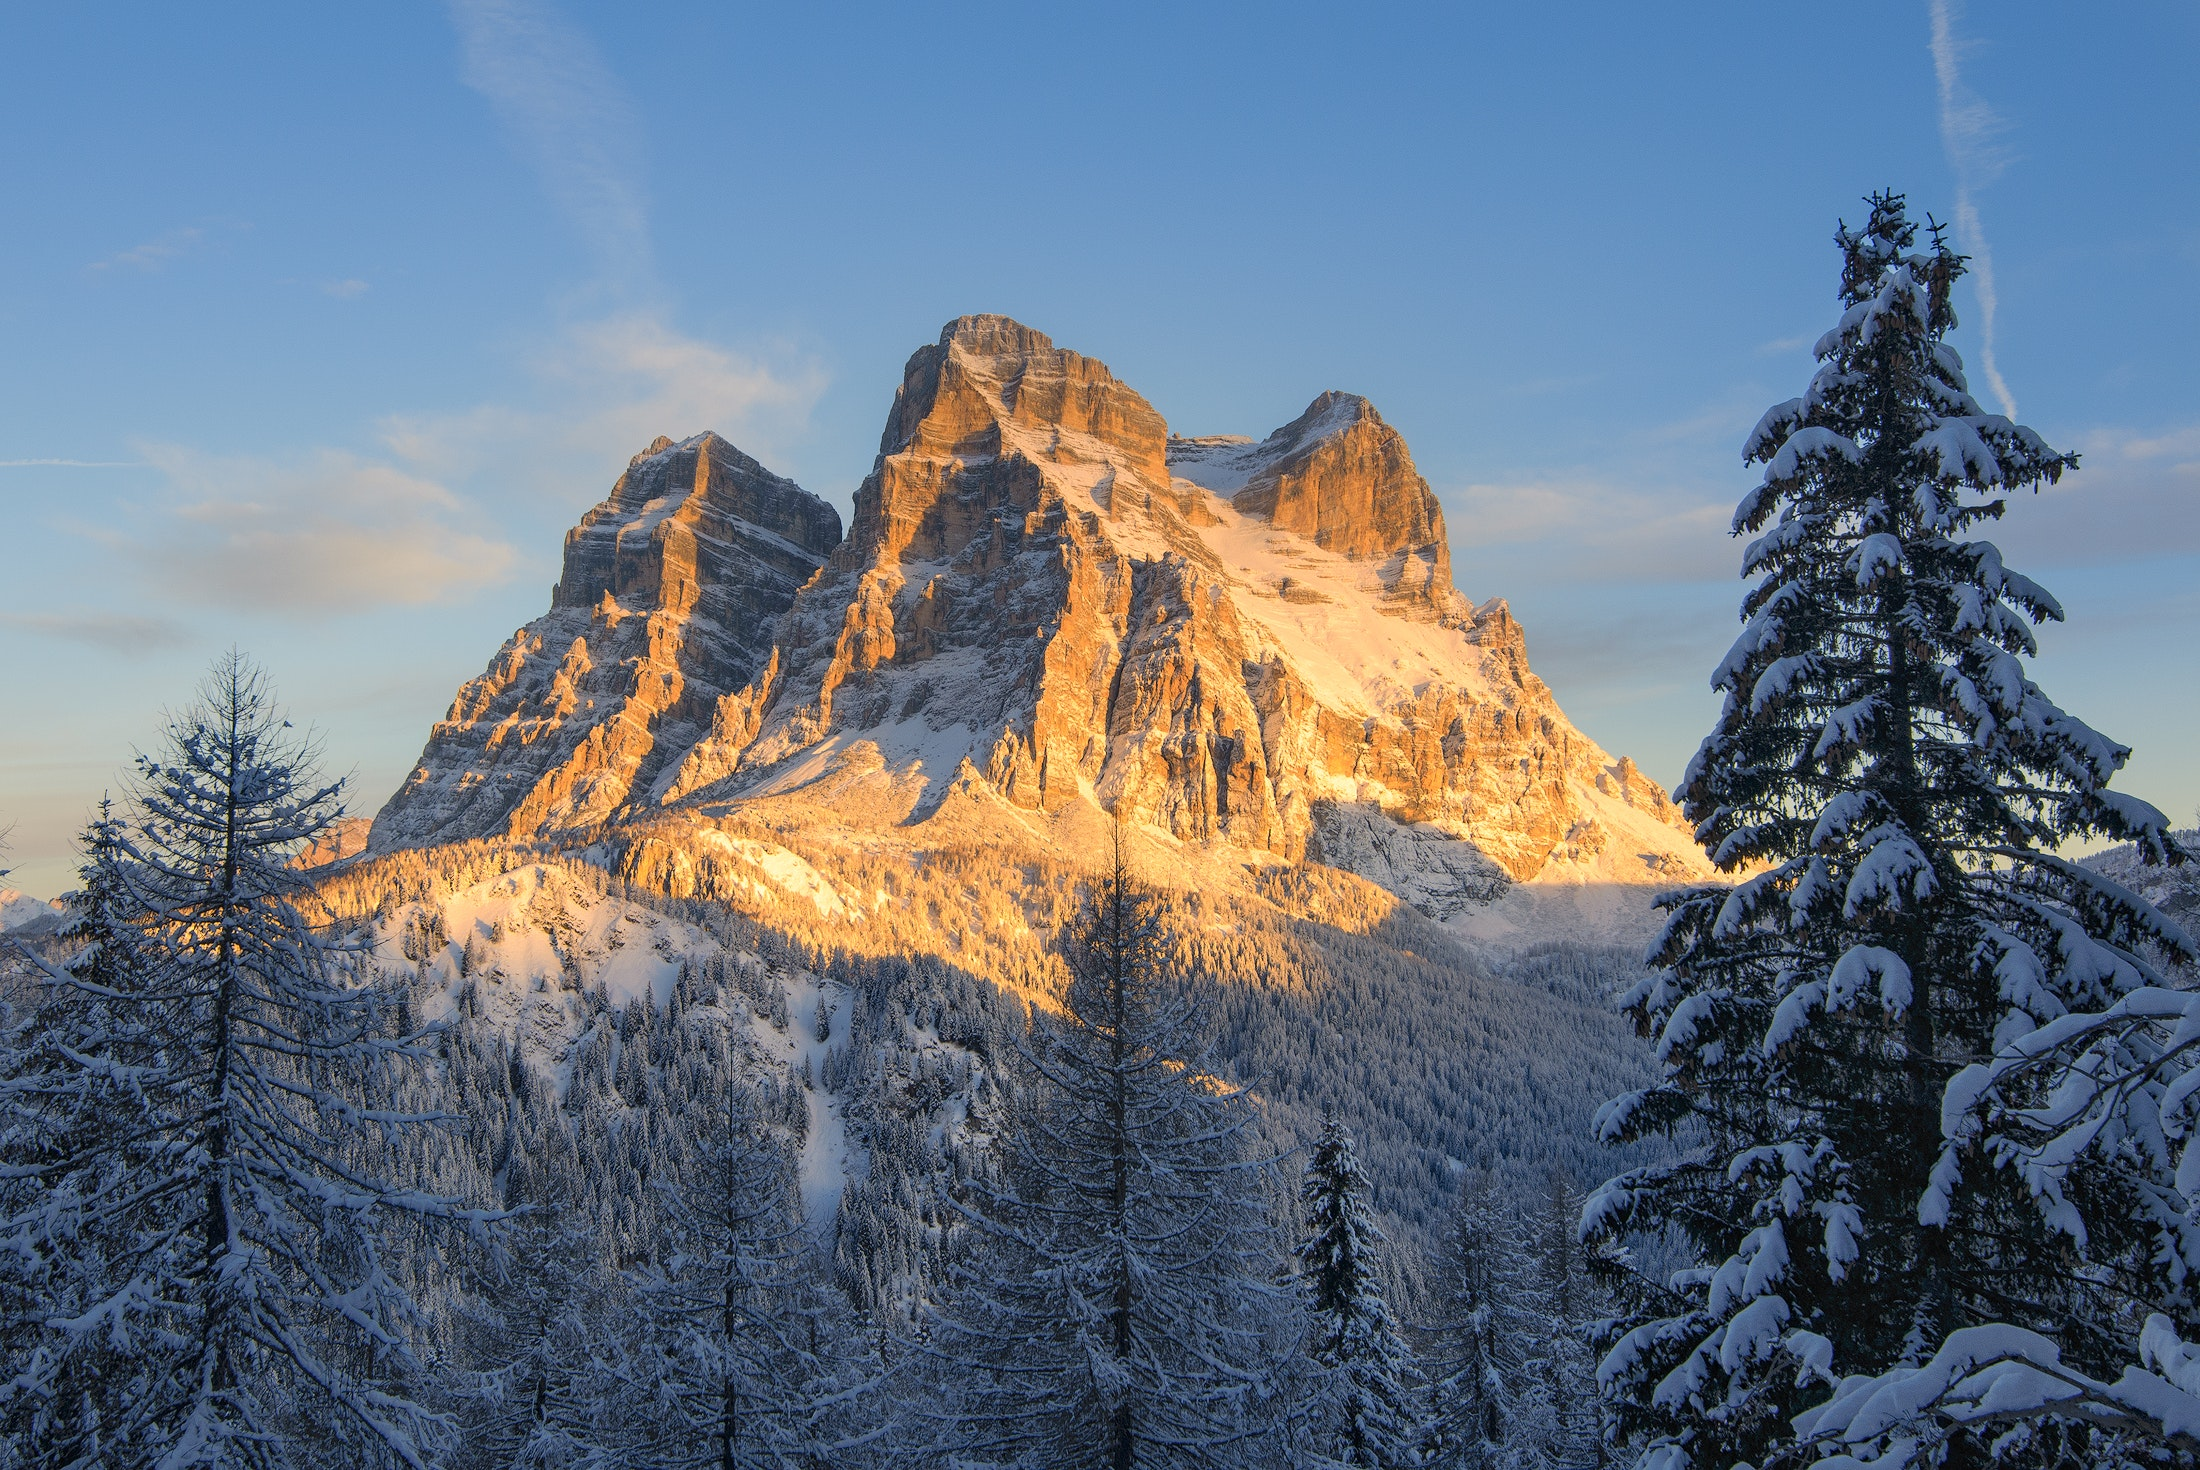 Snow Covered Mountain With Pine Trees, Alpine, Mountain, Winter, Trees, HQ Photo